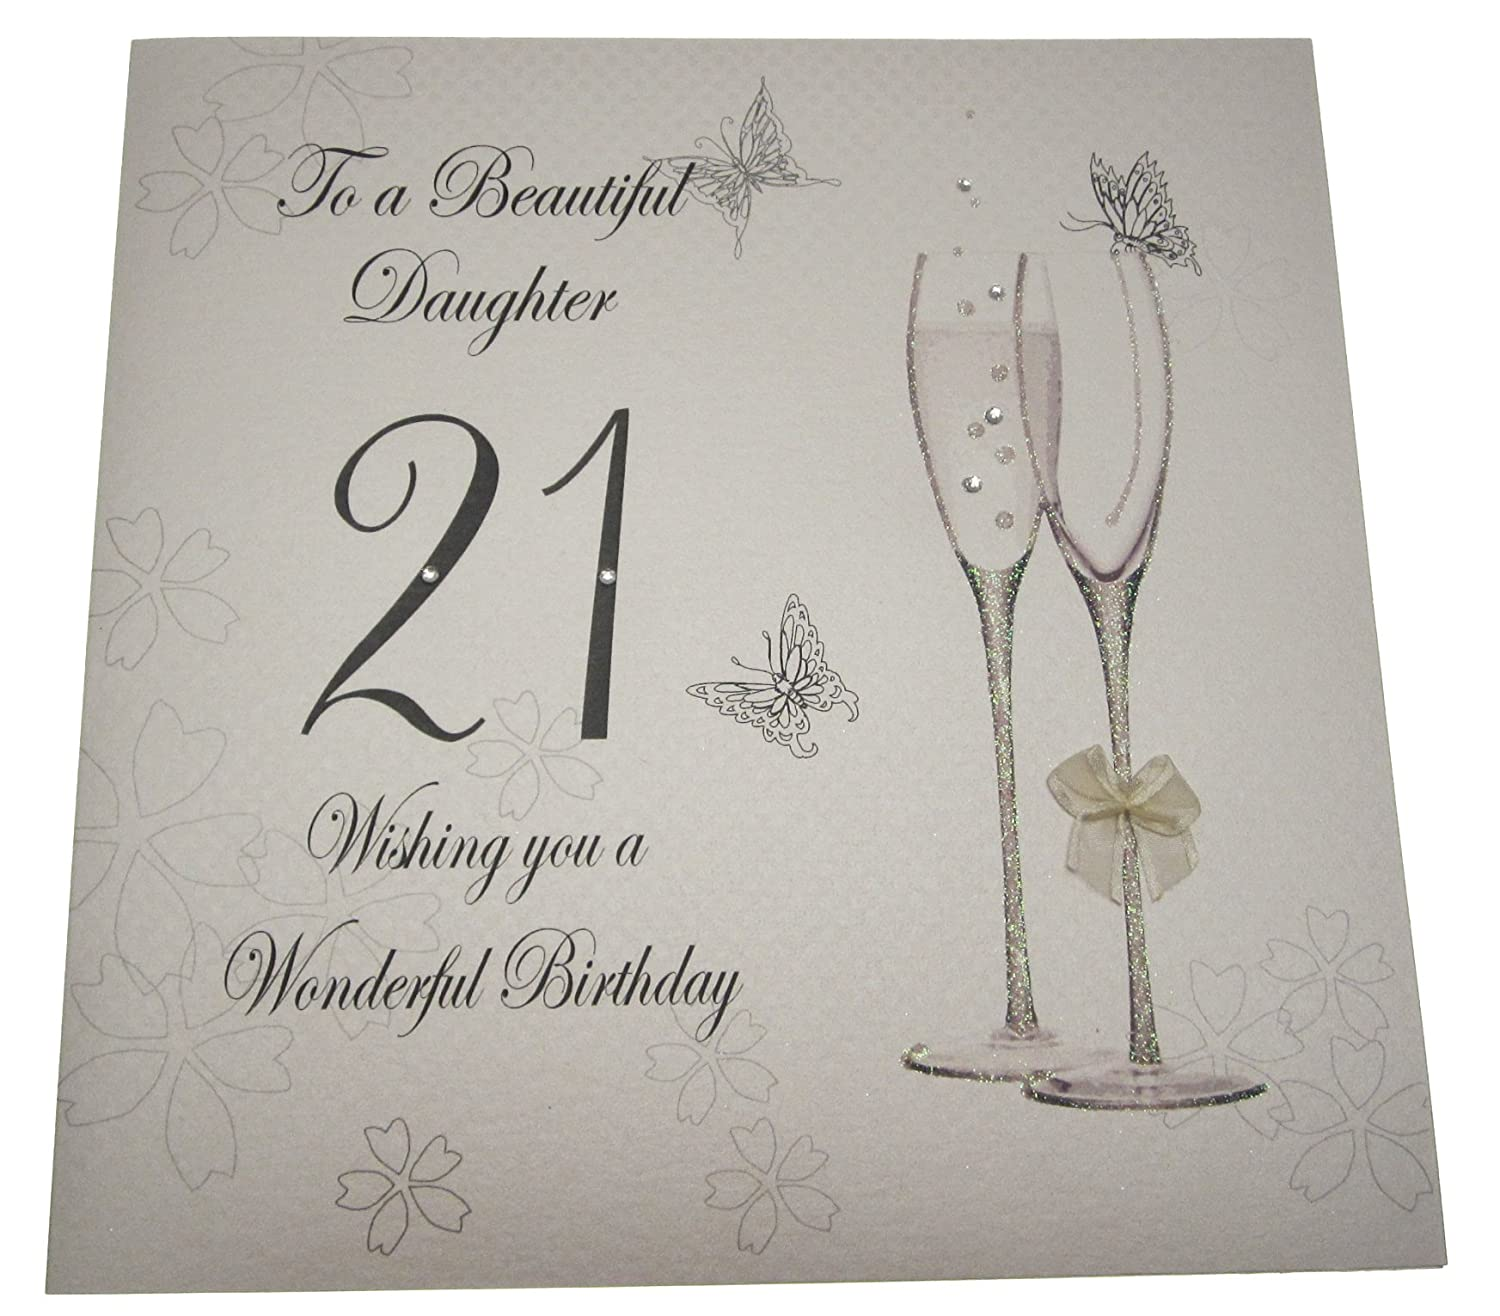 WHITE COTTON CARDS Code XBDD21 To A Beautiful Daughter 21 Wishing You Wonderful Birthday Handmade Large 21st Card Amazoncouk Kitchen Home